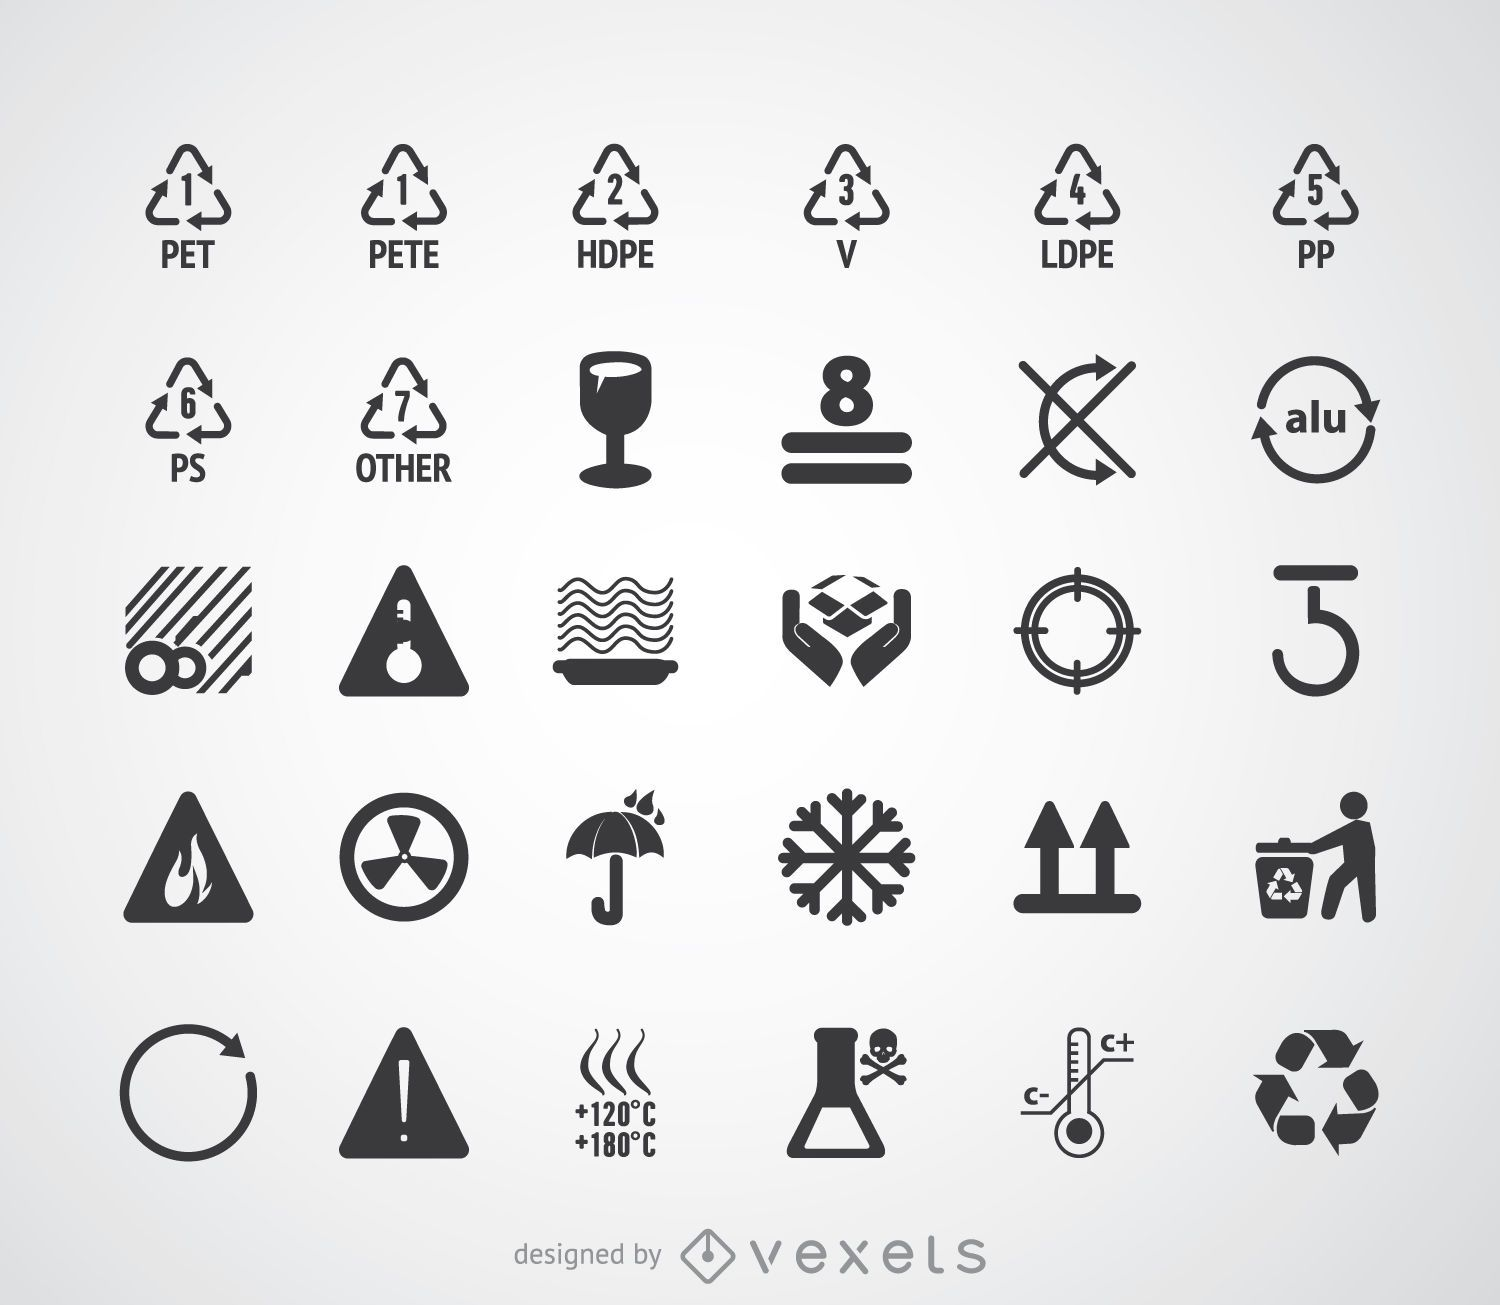 Recycling symbols and pictograms set - Vector download